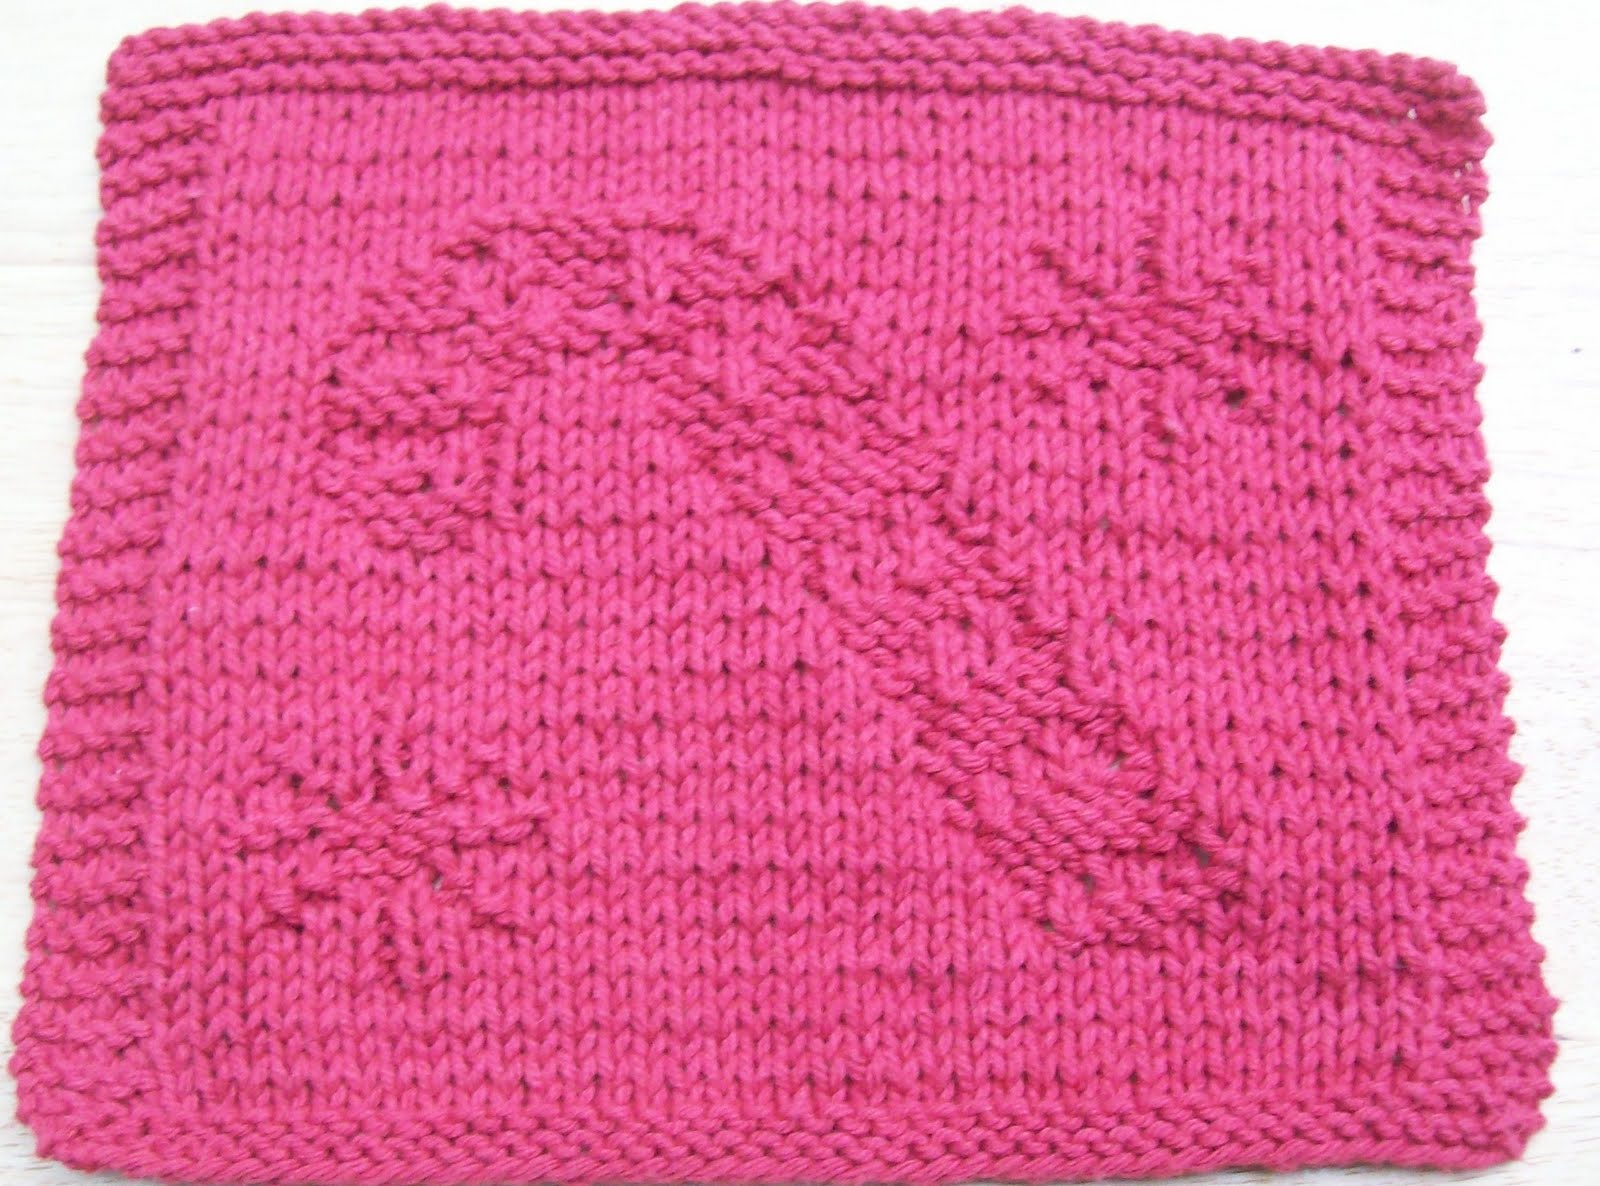 Free Knitting Patterns Holiday Dishcloths : DigKnitty Designs: Another Candy Cane Knit Dishcloth Pattern